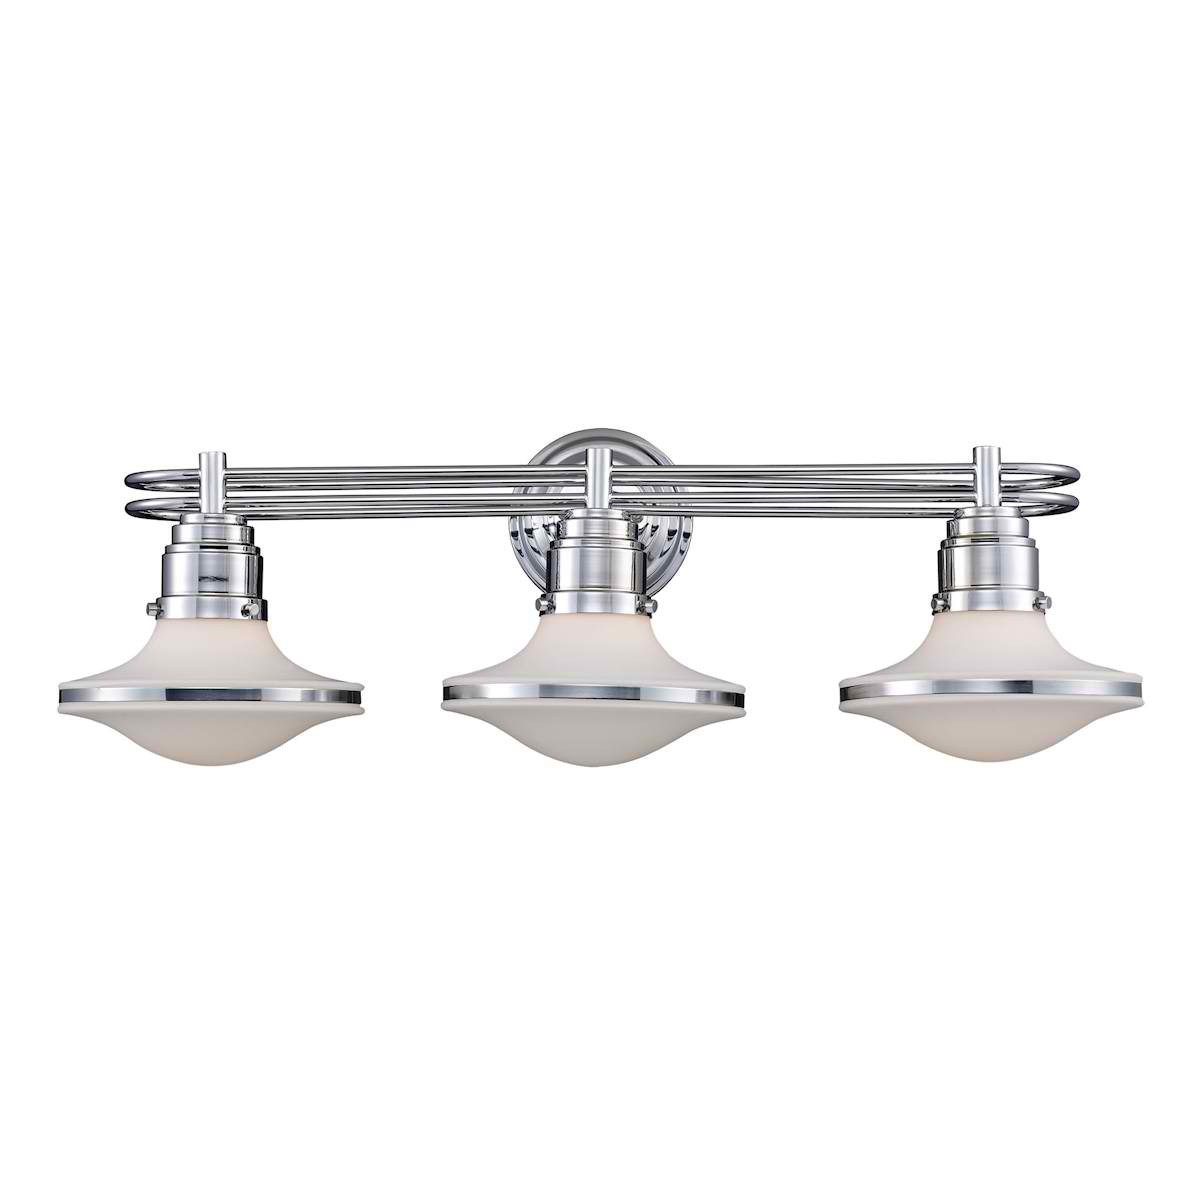 Retrospective 3-Light Bath Bar in Polished Chrome